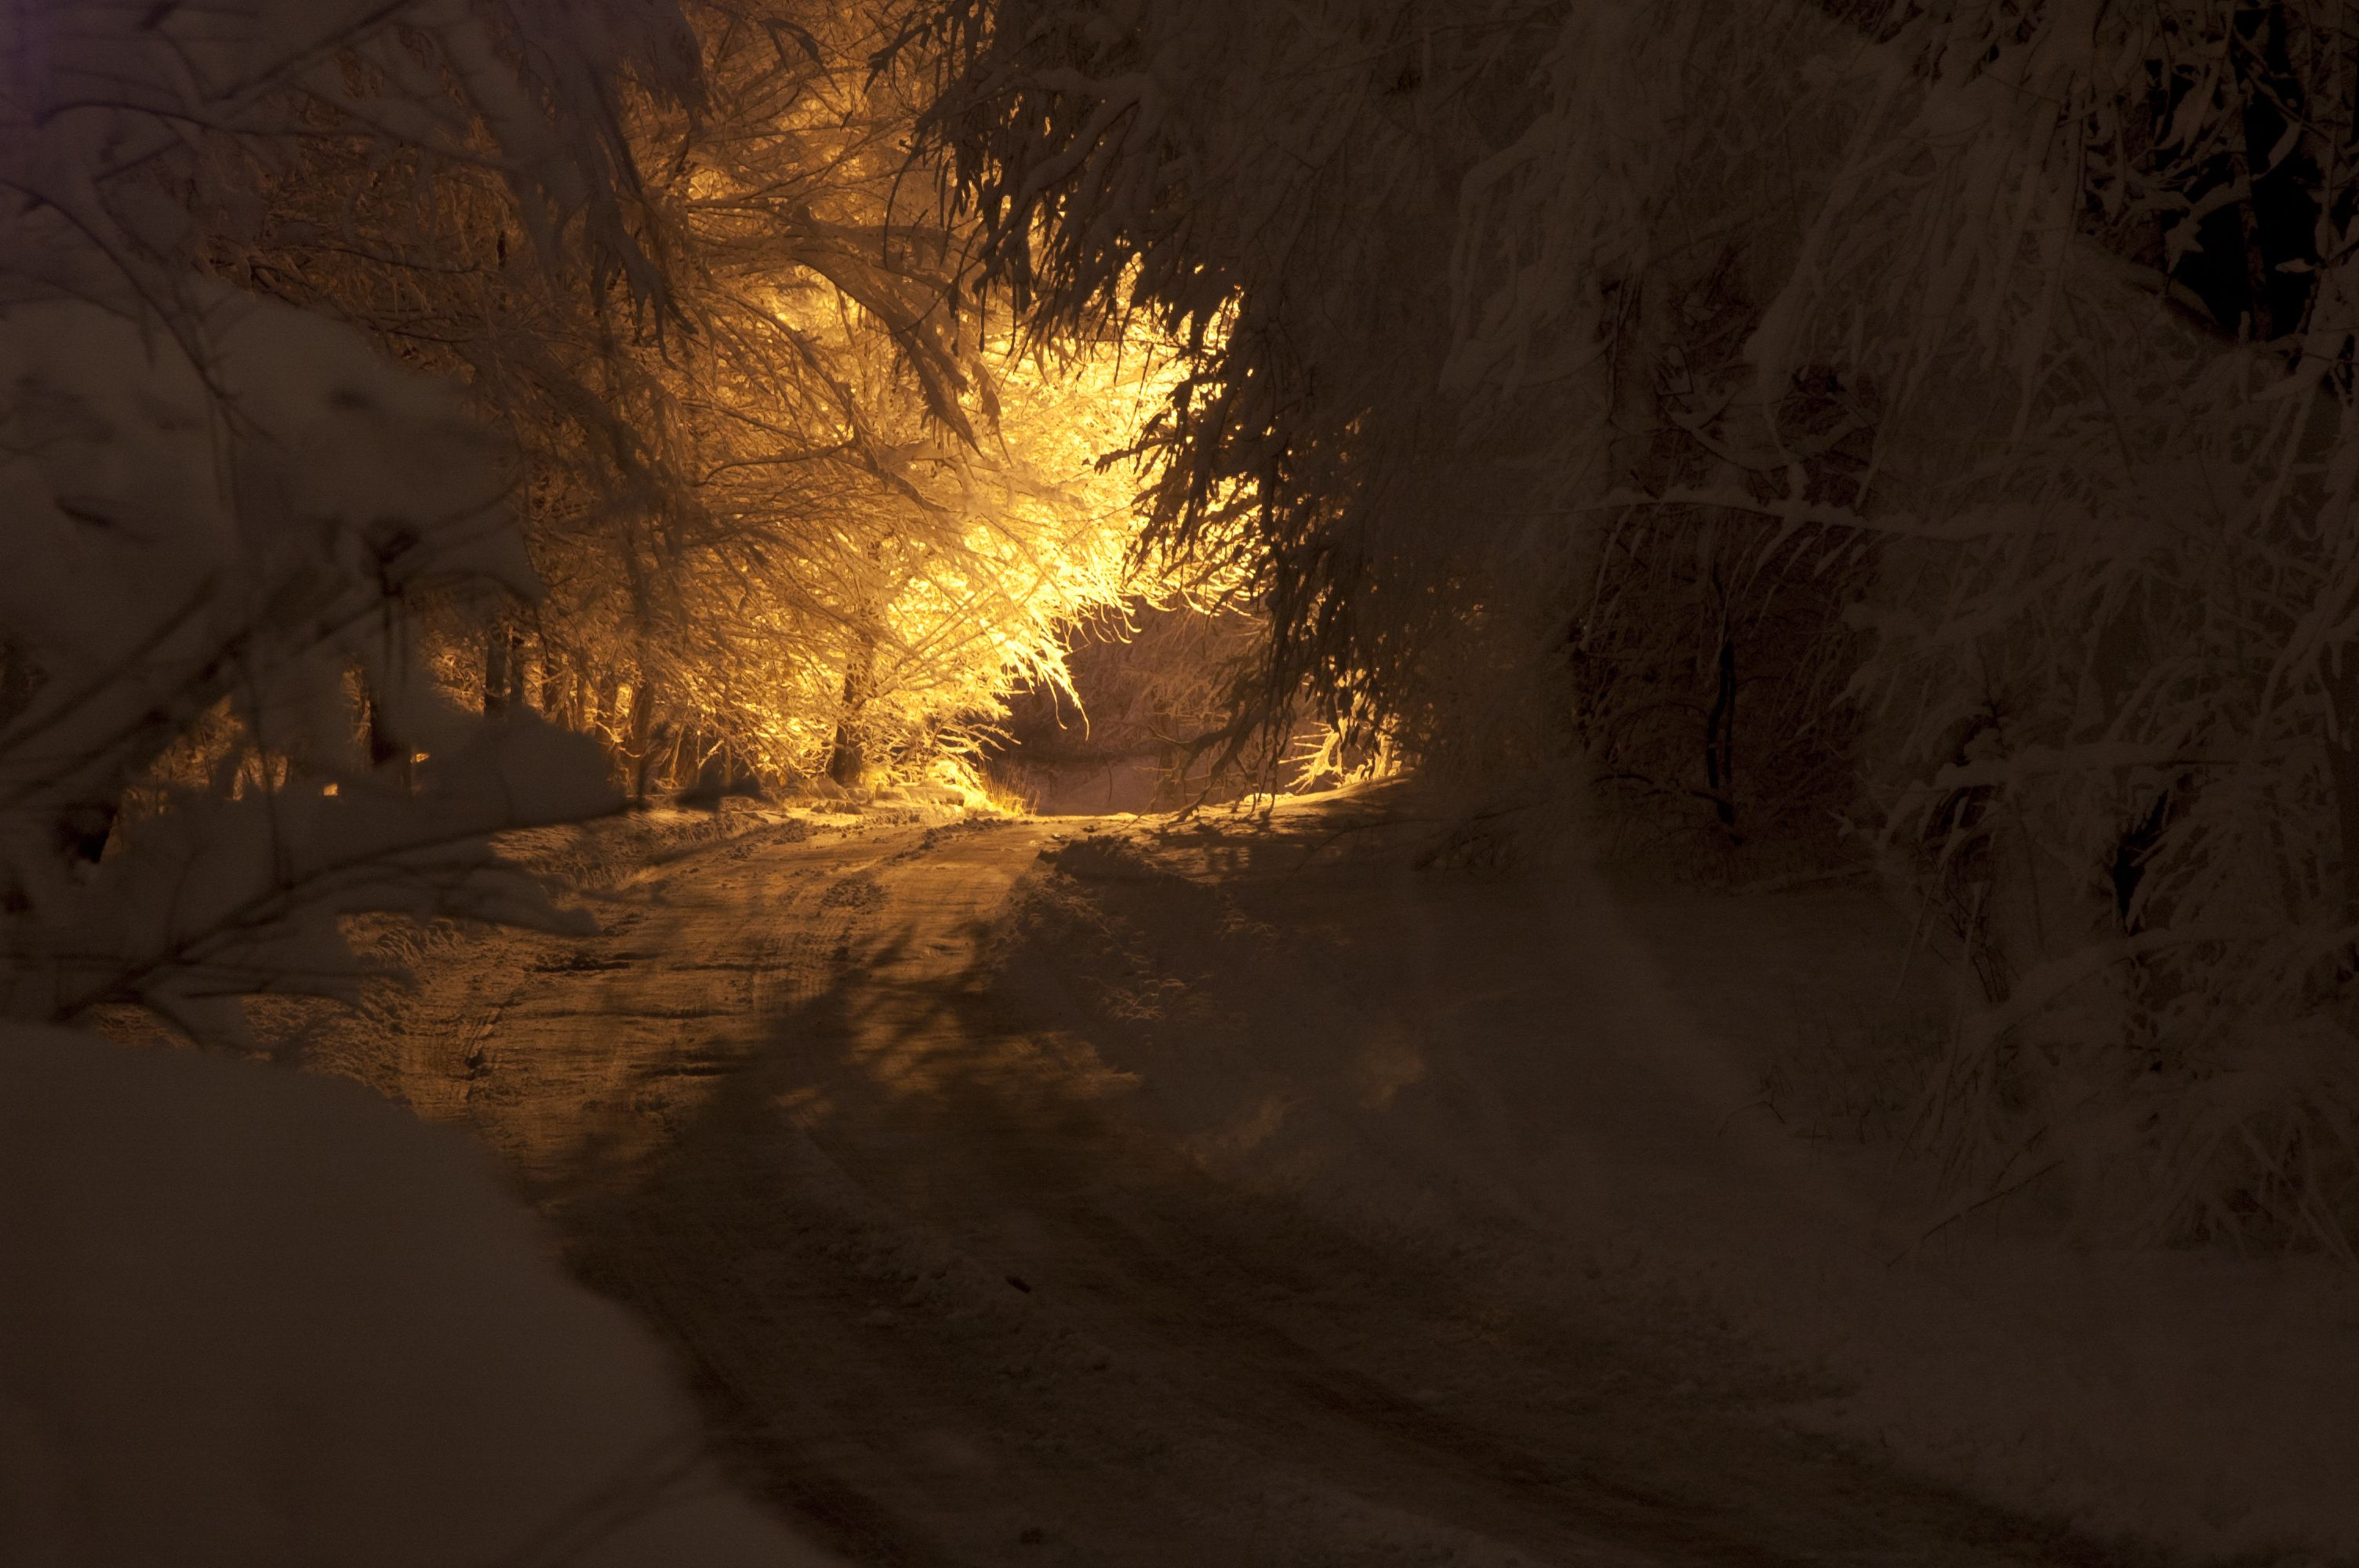 Cy's Road in Sandy, Utah after a wet snowfall. Photo